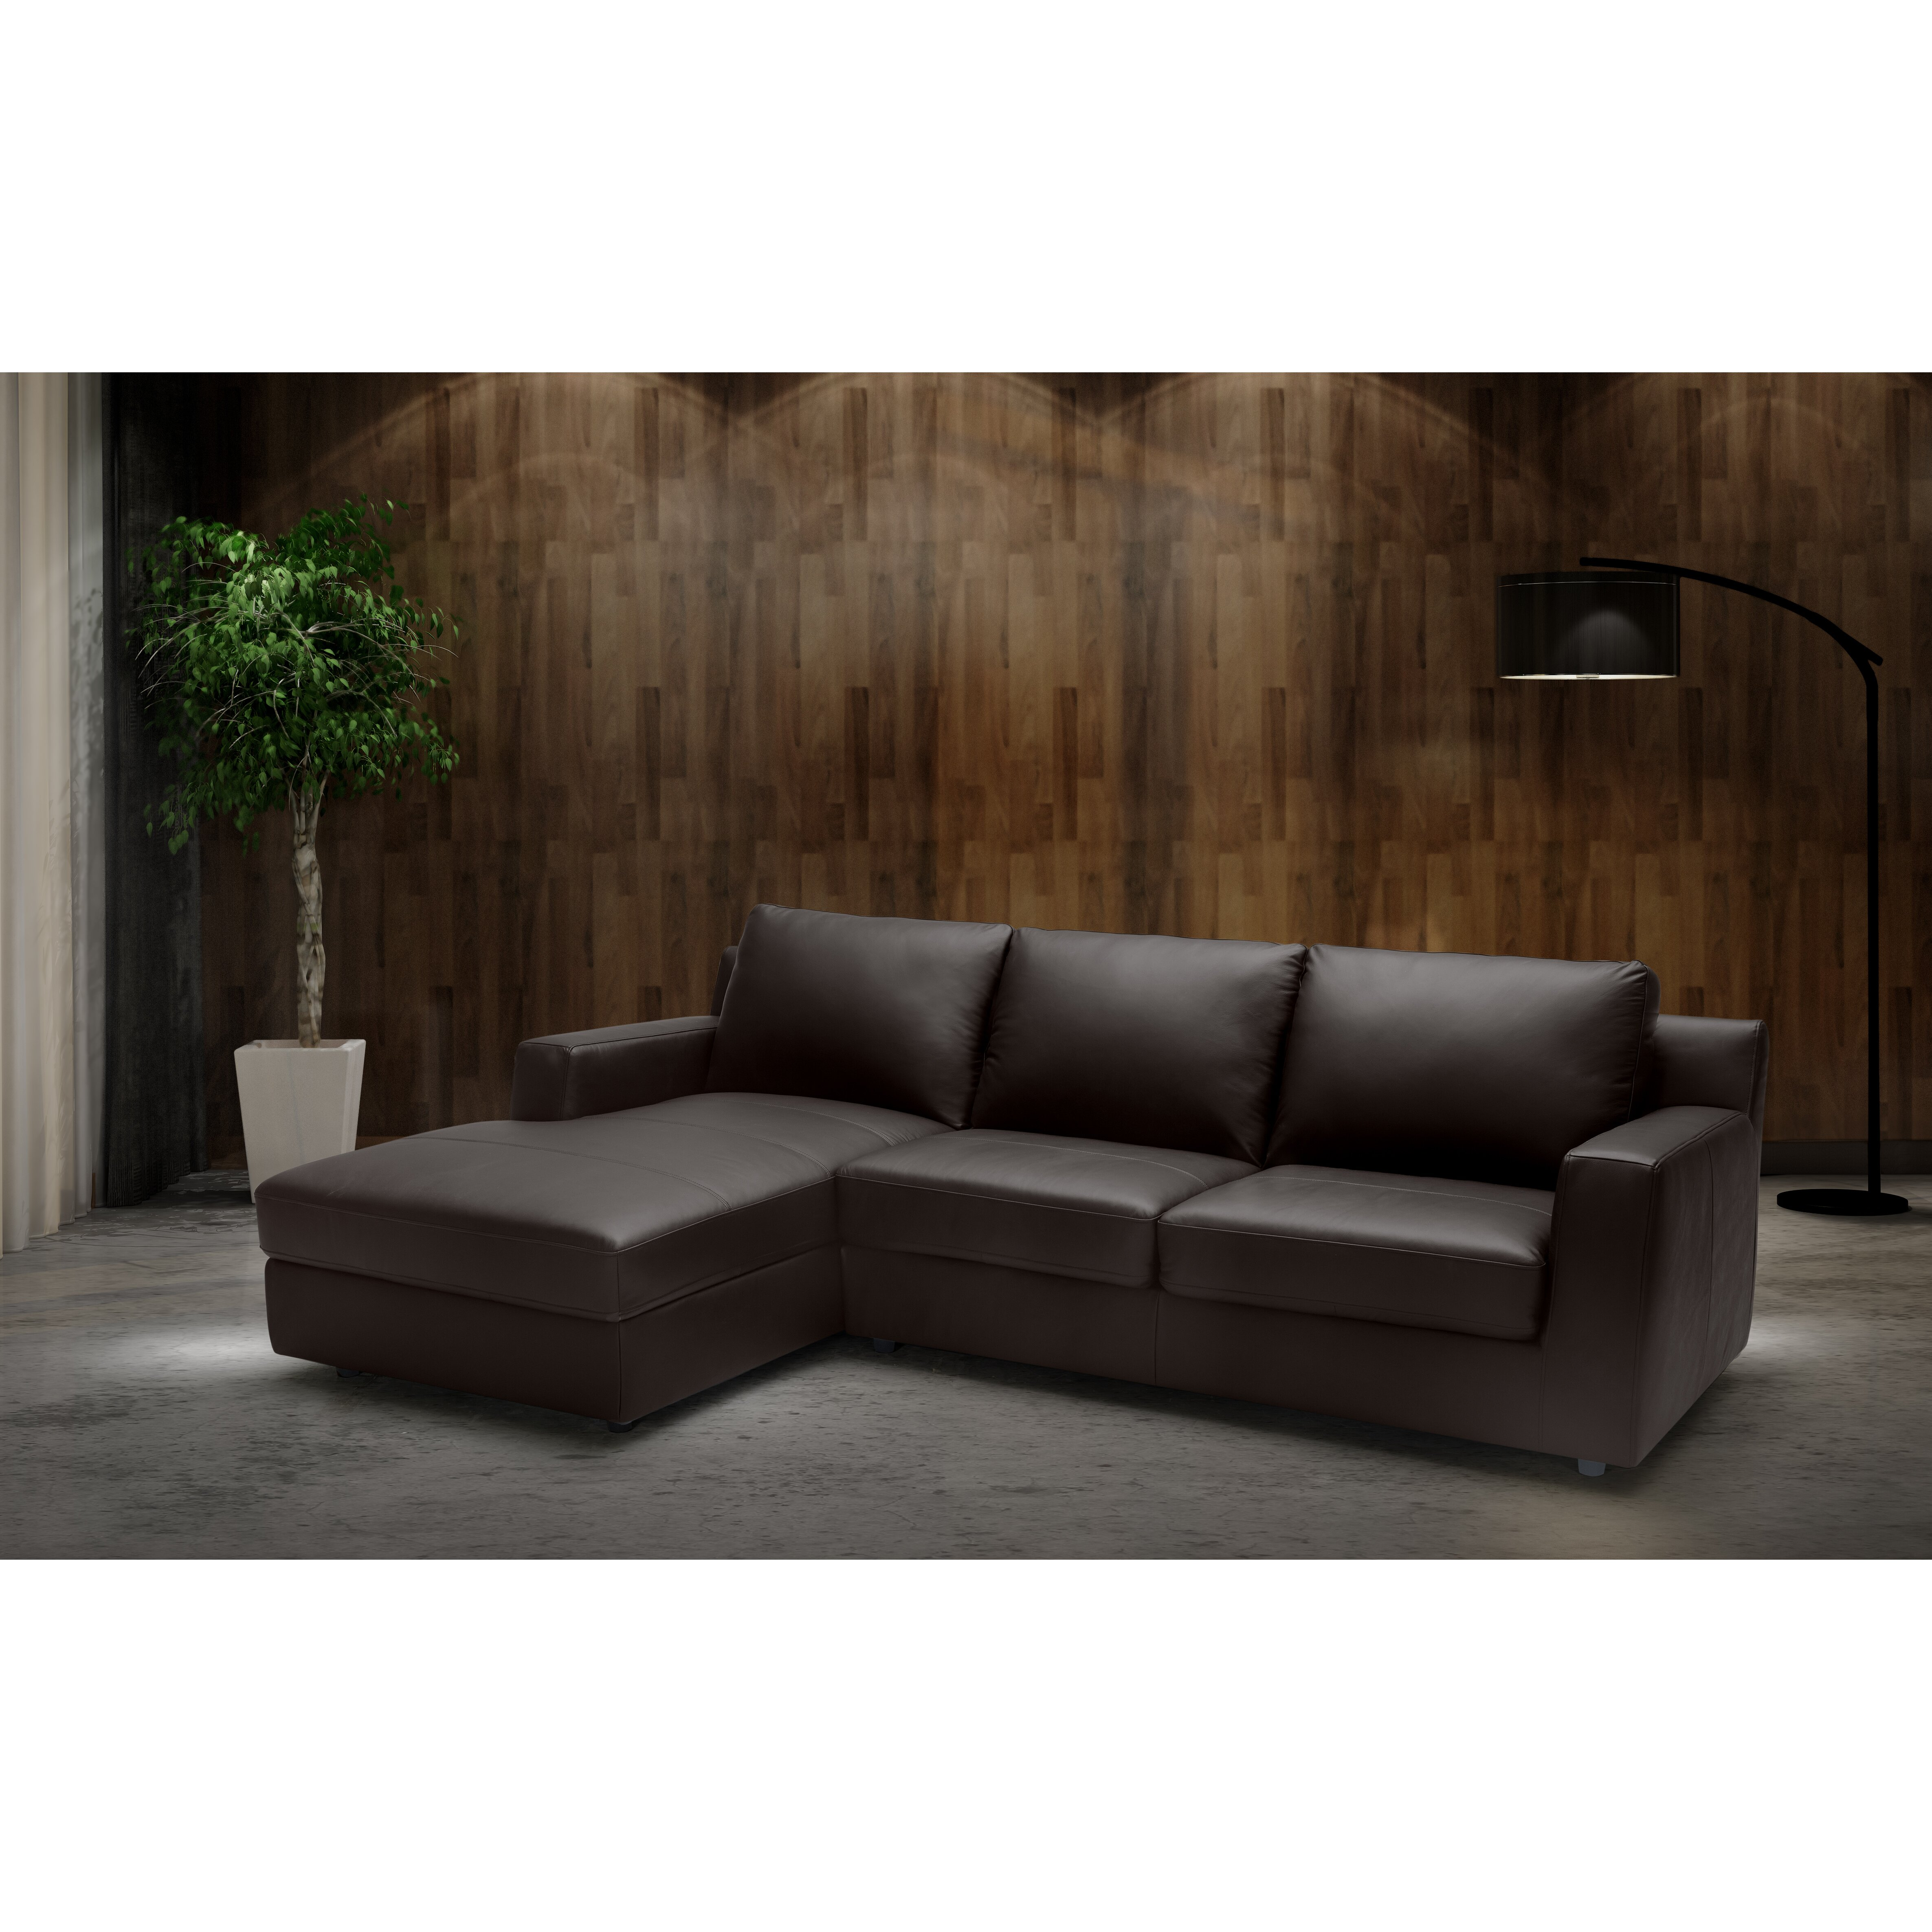 J m furniture taylor sleeper sectional for Wayfair sectionals